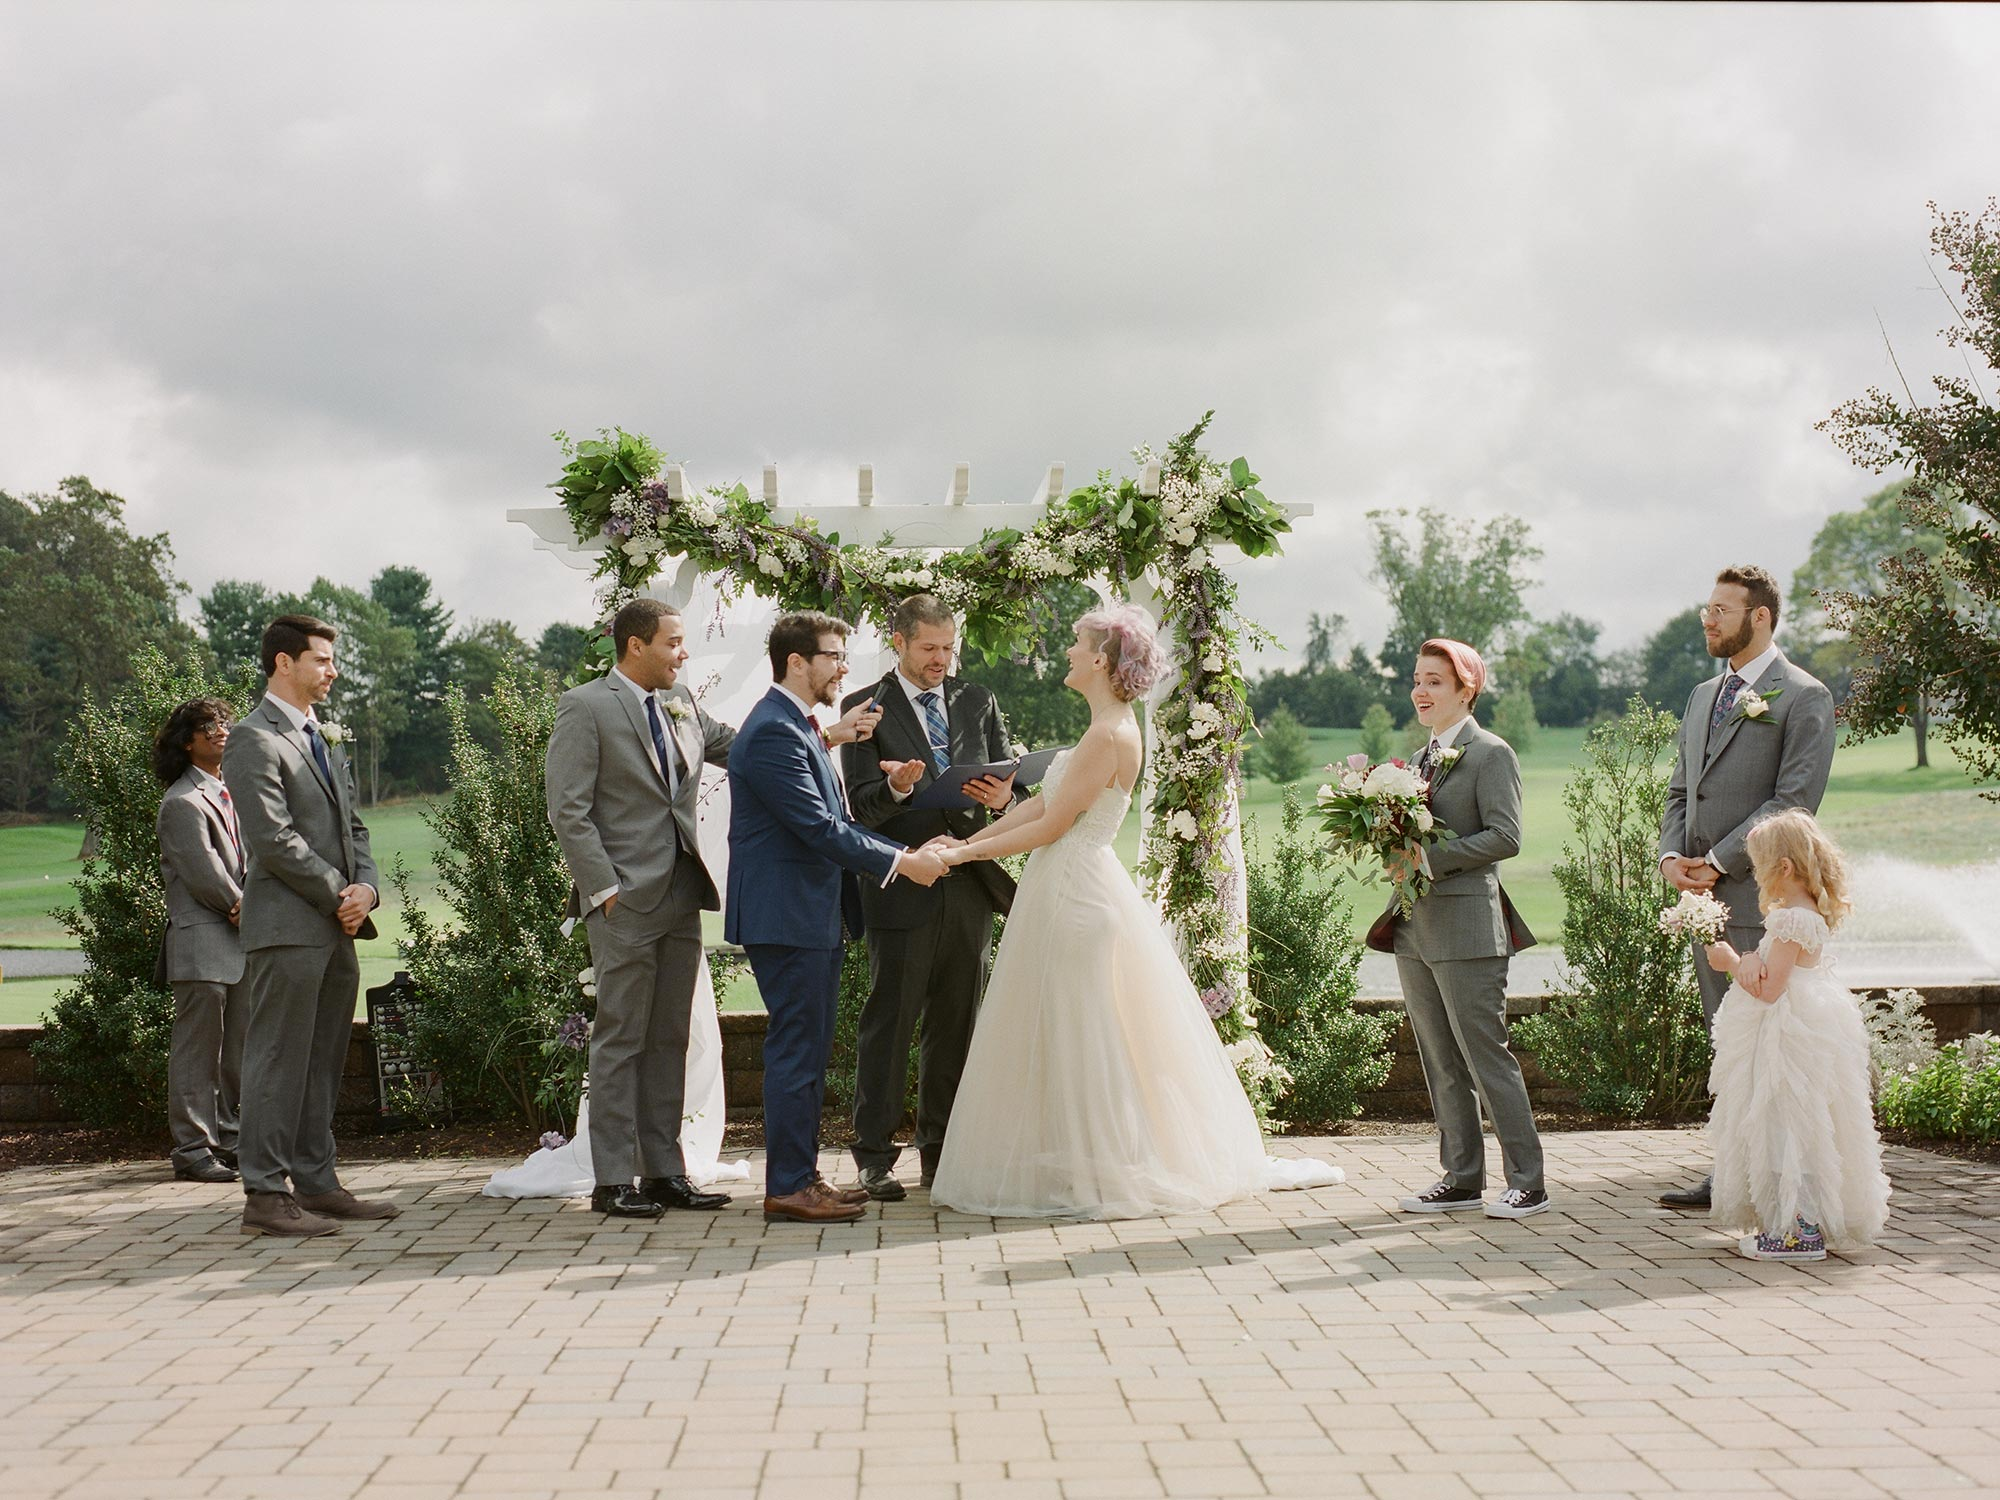 Chic Queer Wedding in West Chester Pennsylvania showing ceremony Judson Rappaport Photography